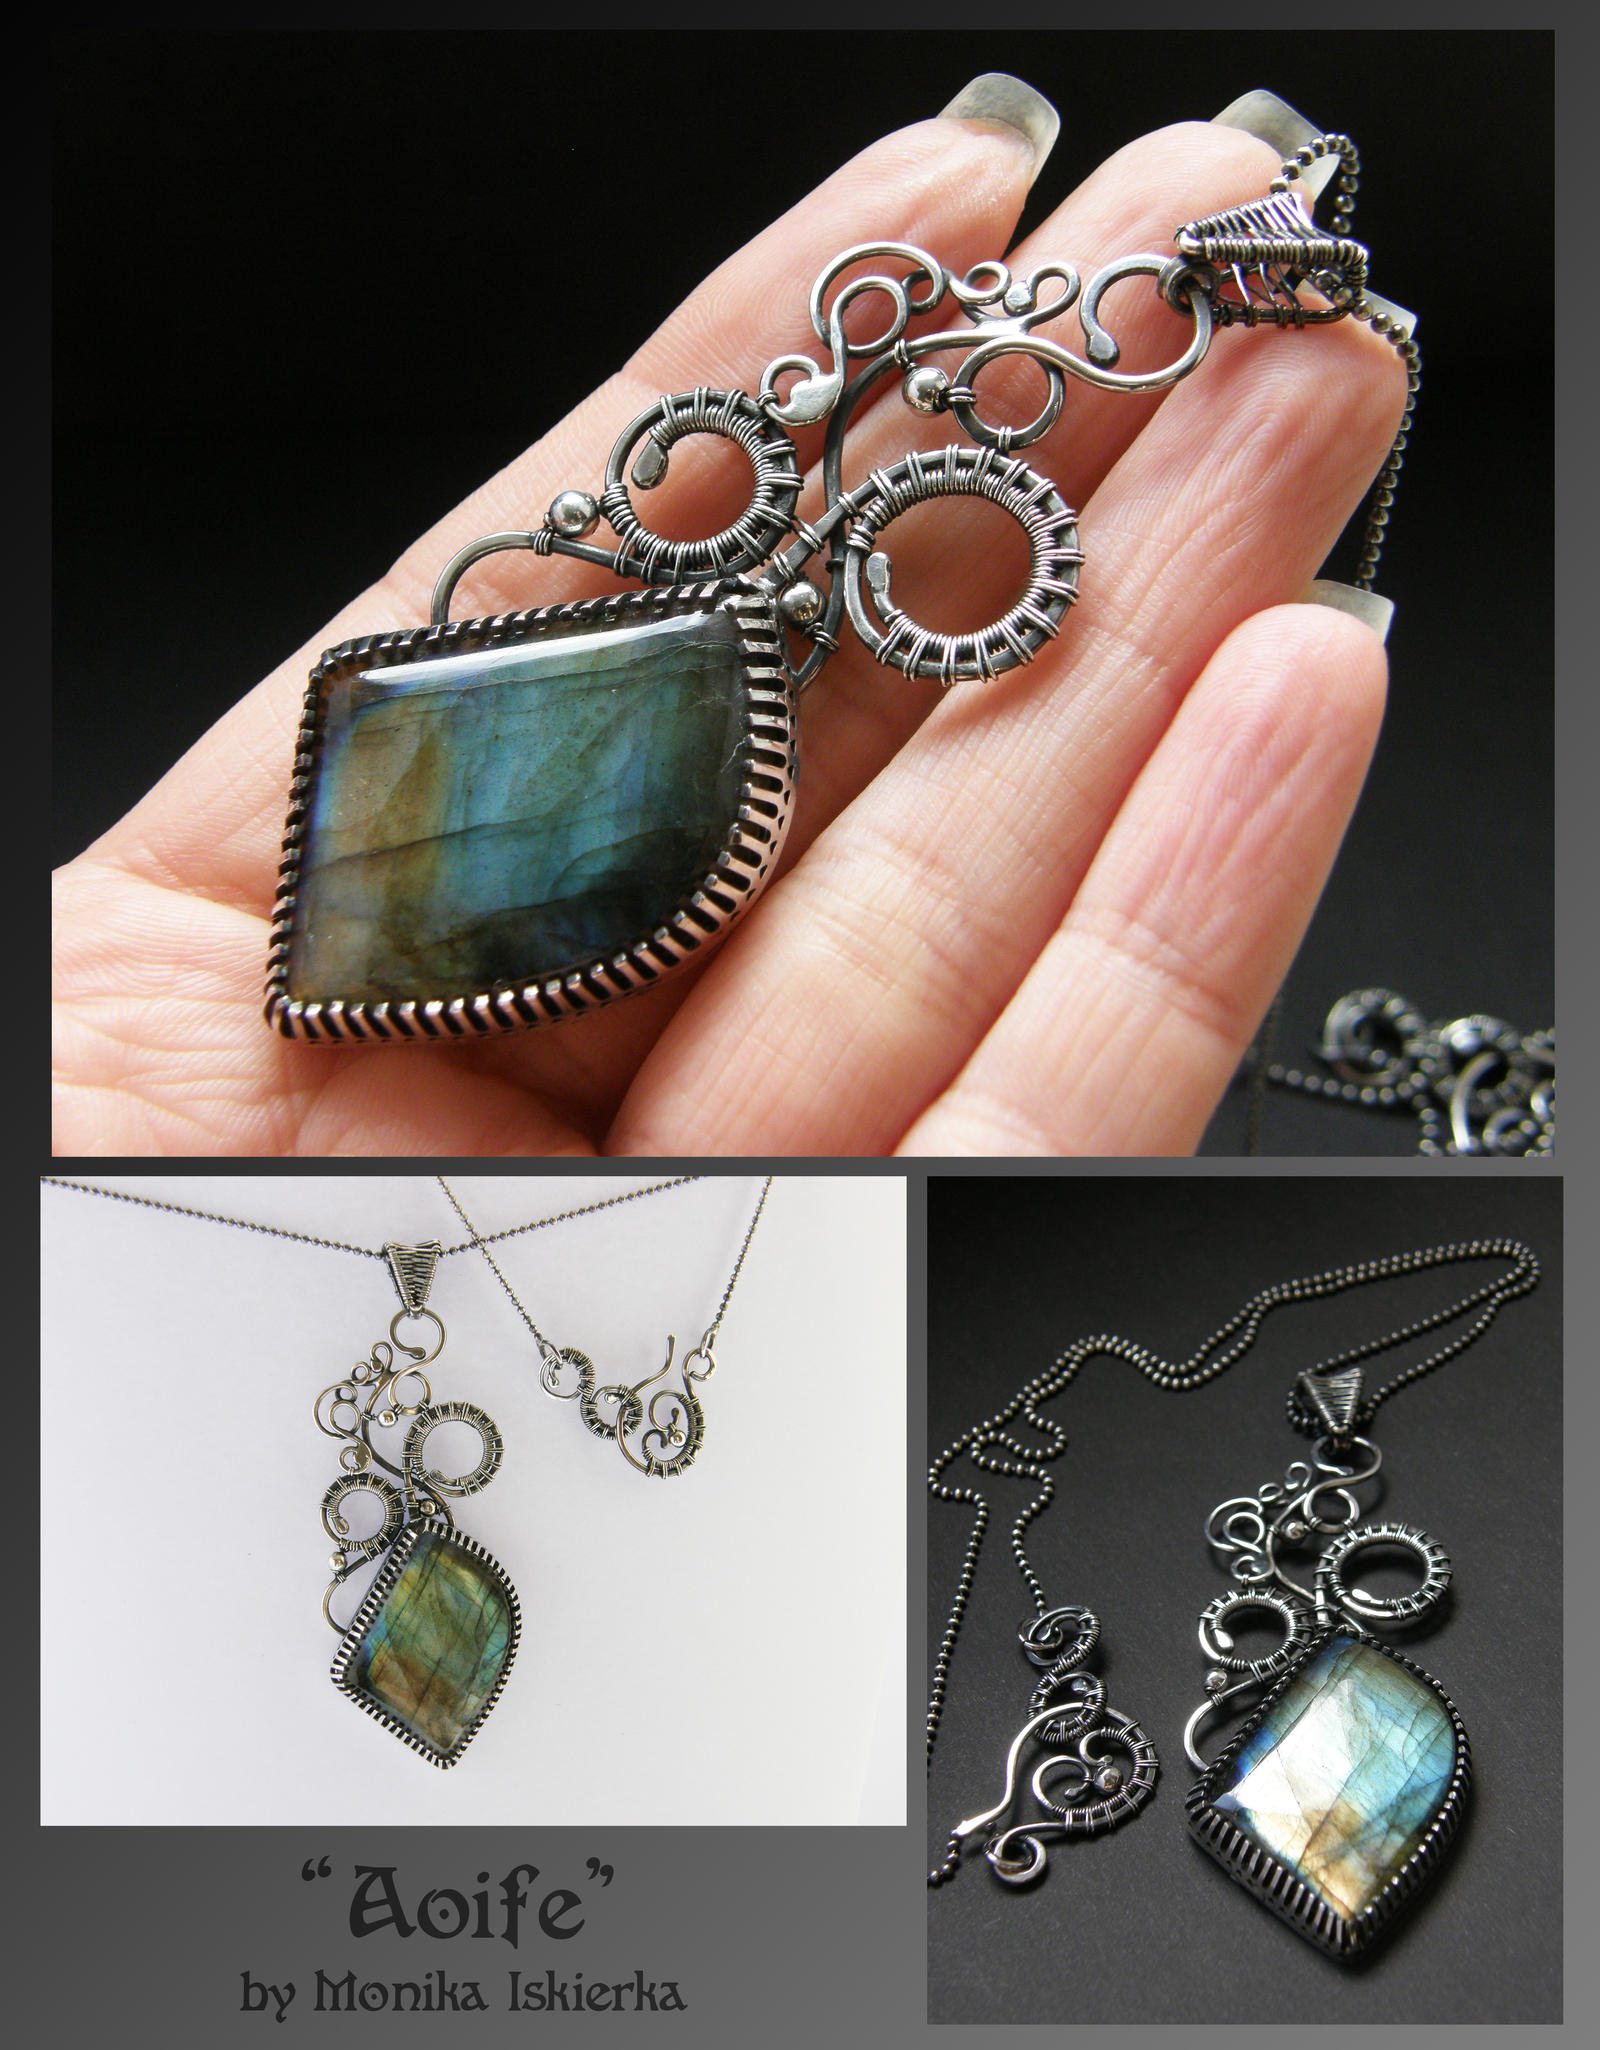 Aoife- wire wrapped necklace by mea00